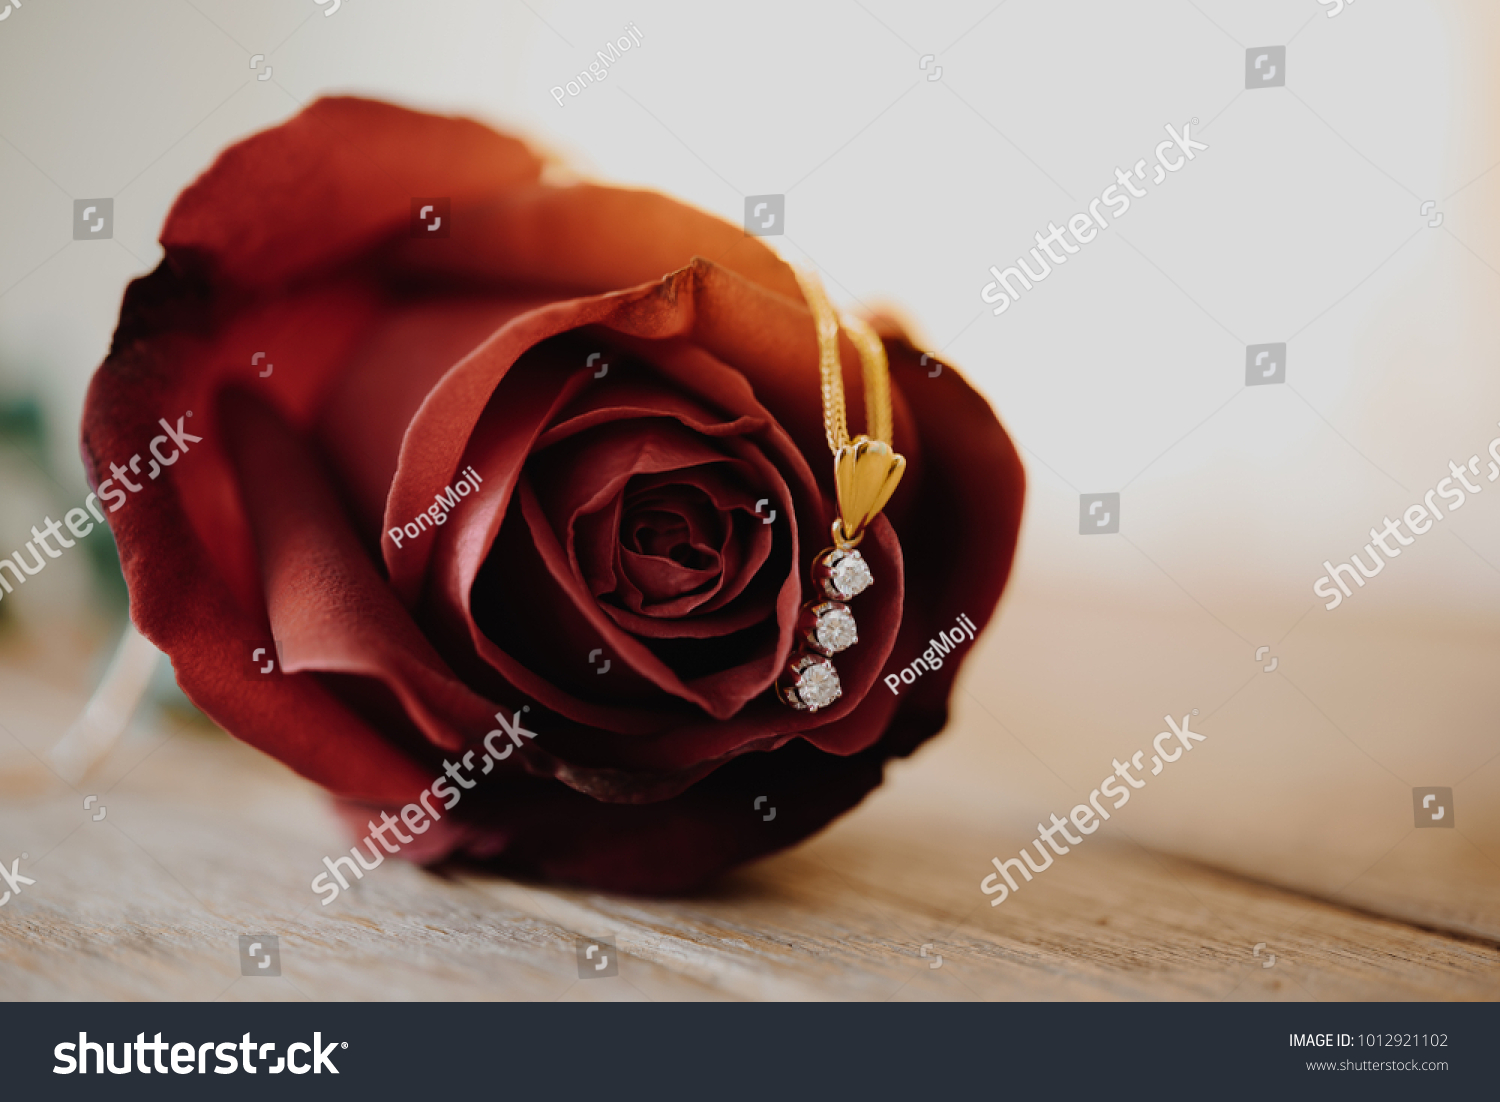 Red rose flower nature beautiful flowers stock photo edit now red rose flower nature beautiful flowers from garden and diamond necklace ring for valentines or marriage izmirmasajfo